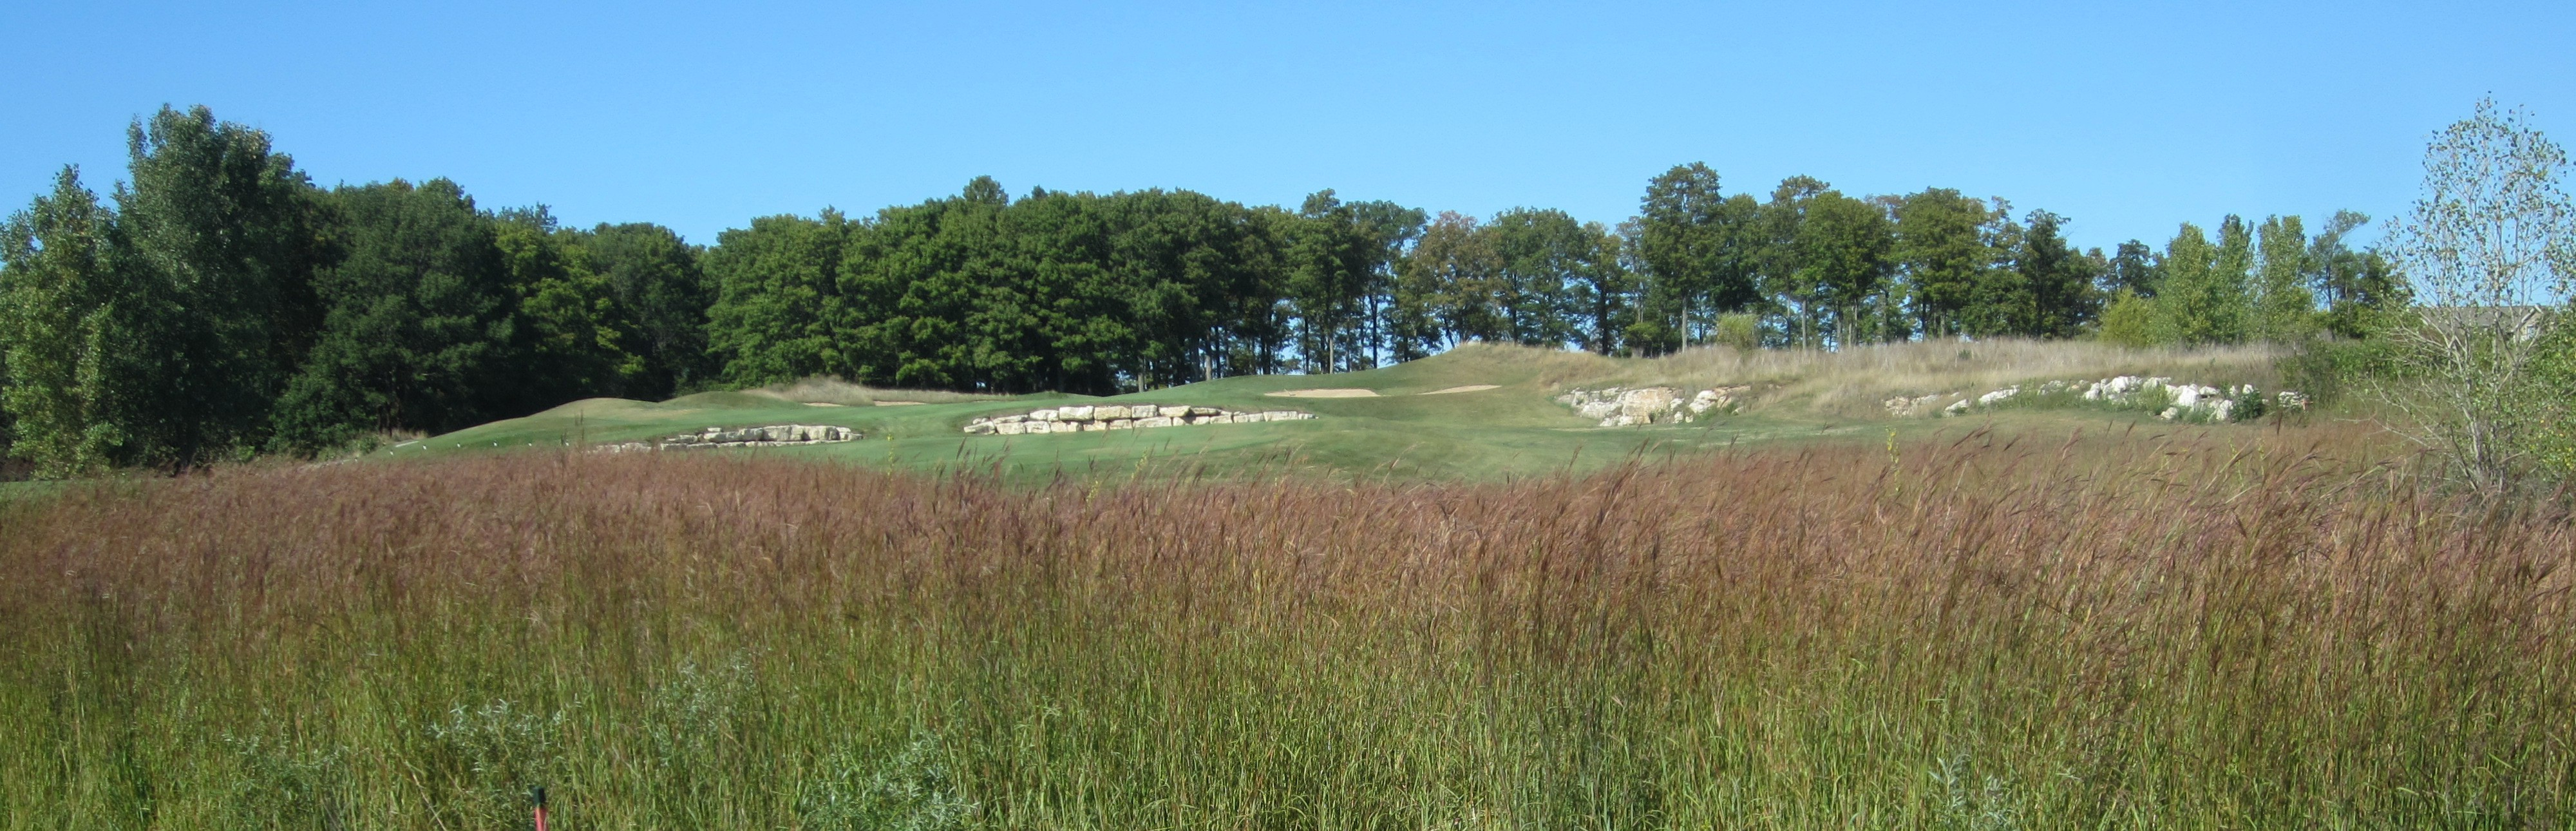 Golf Course Review: Horseshoe Bay